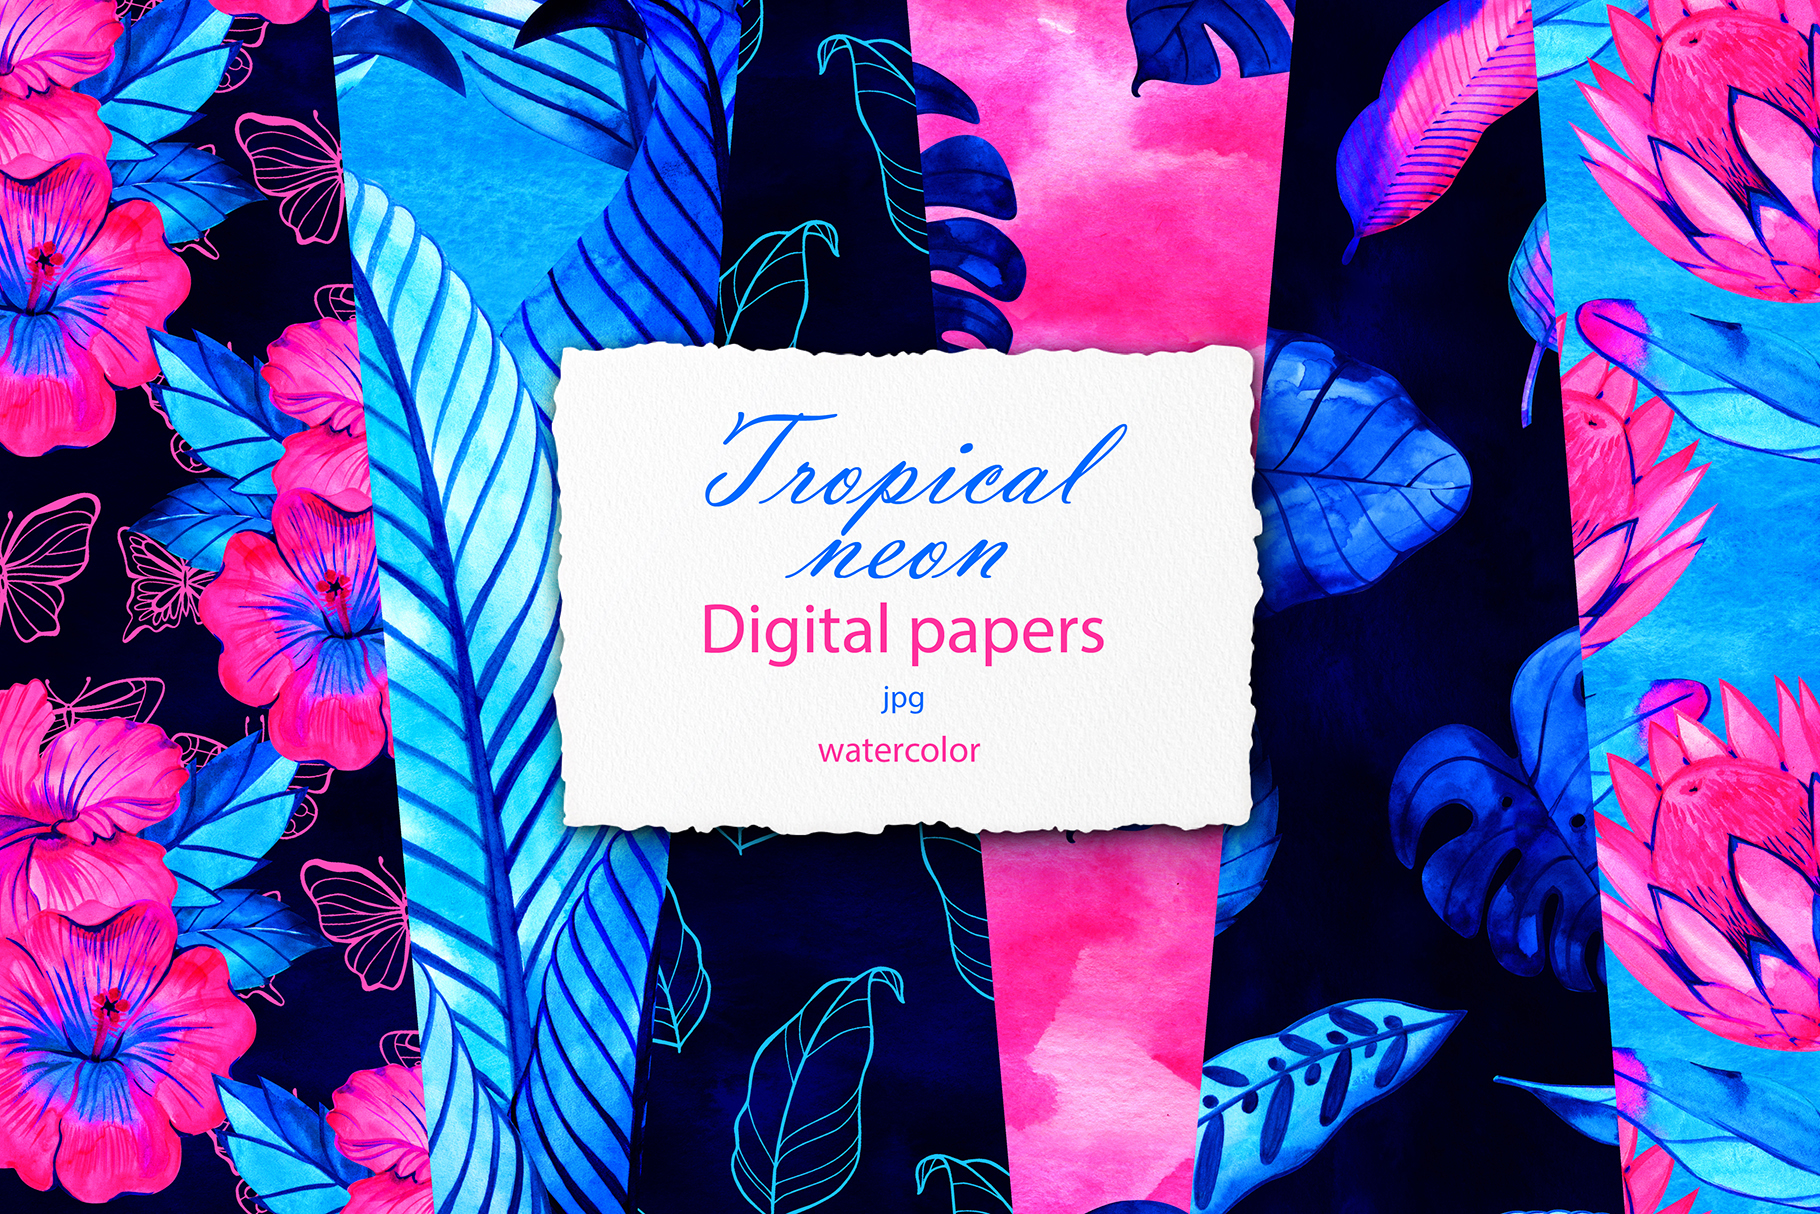 Download Free Neon Tropic Digital Paper Pack Graphic By Natalimyastore SVG Cut Files